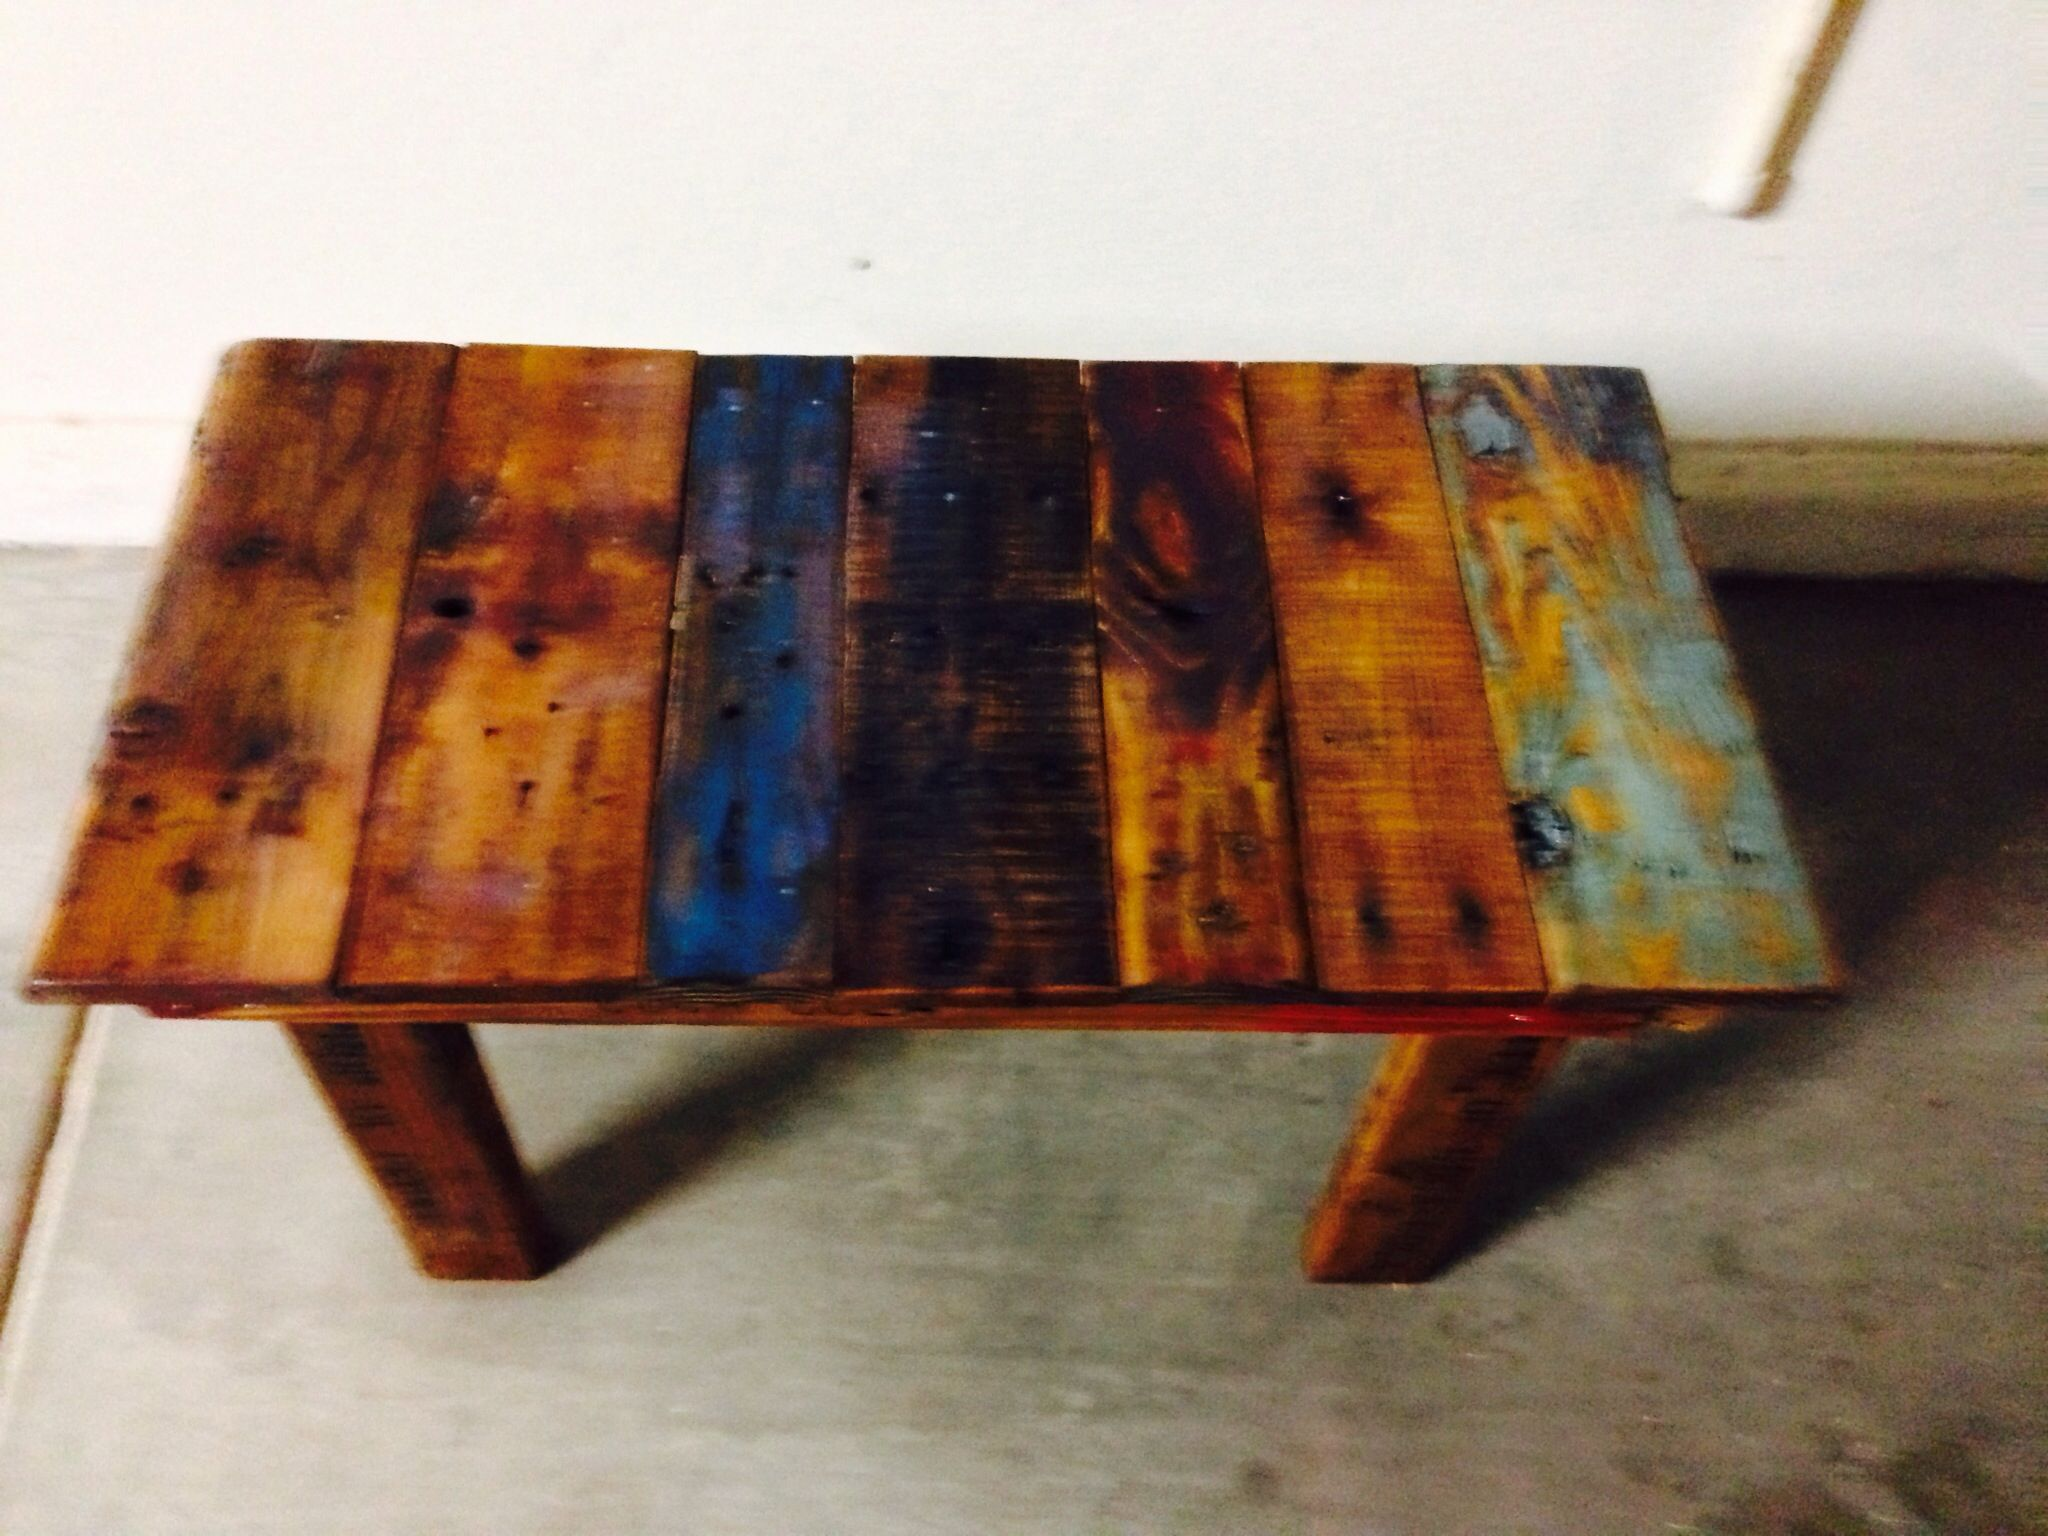 Second side table / Bench